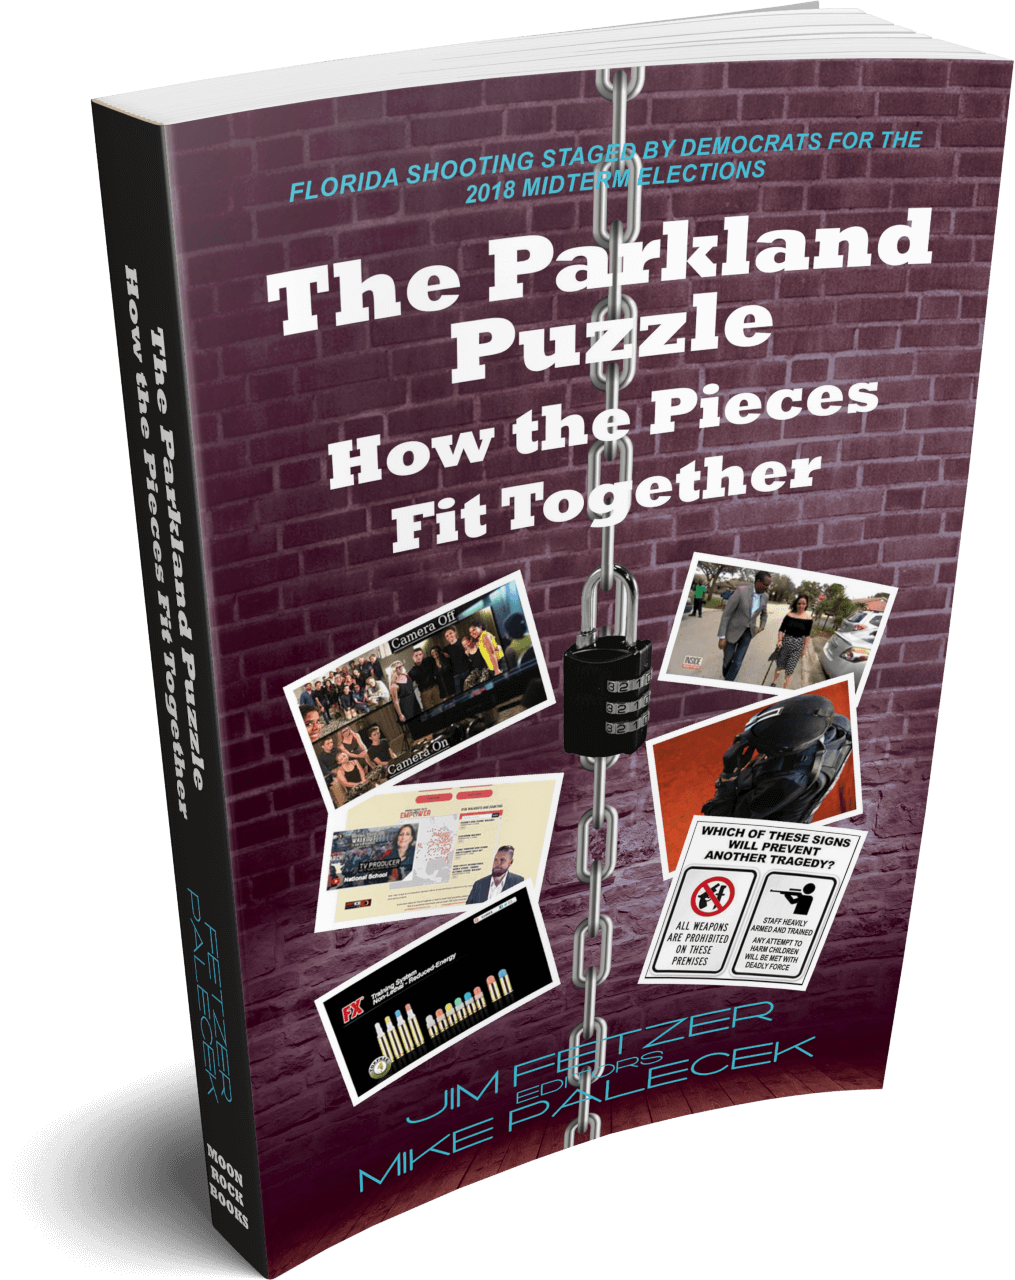 The Parkland Puzzle—How the Pieces Fit Together